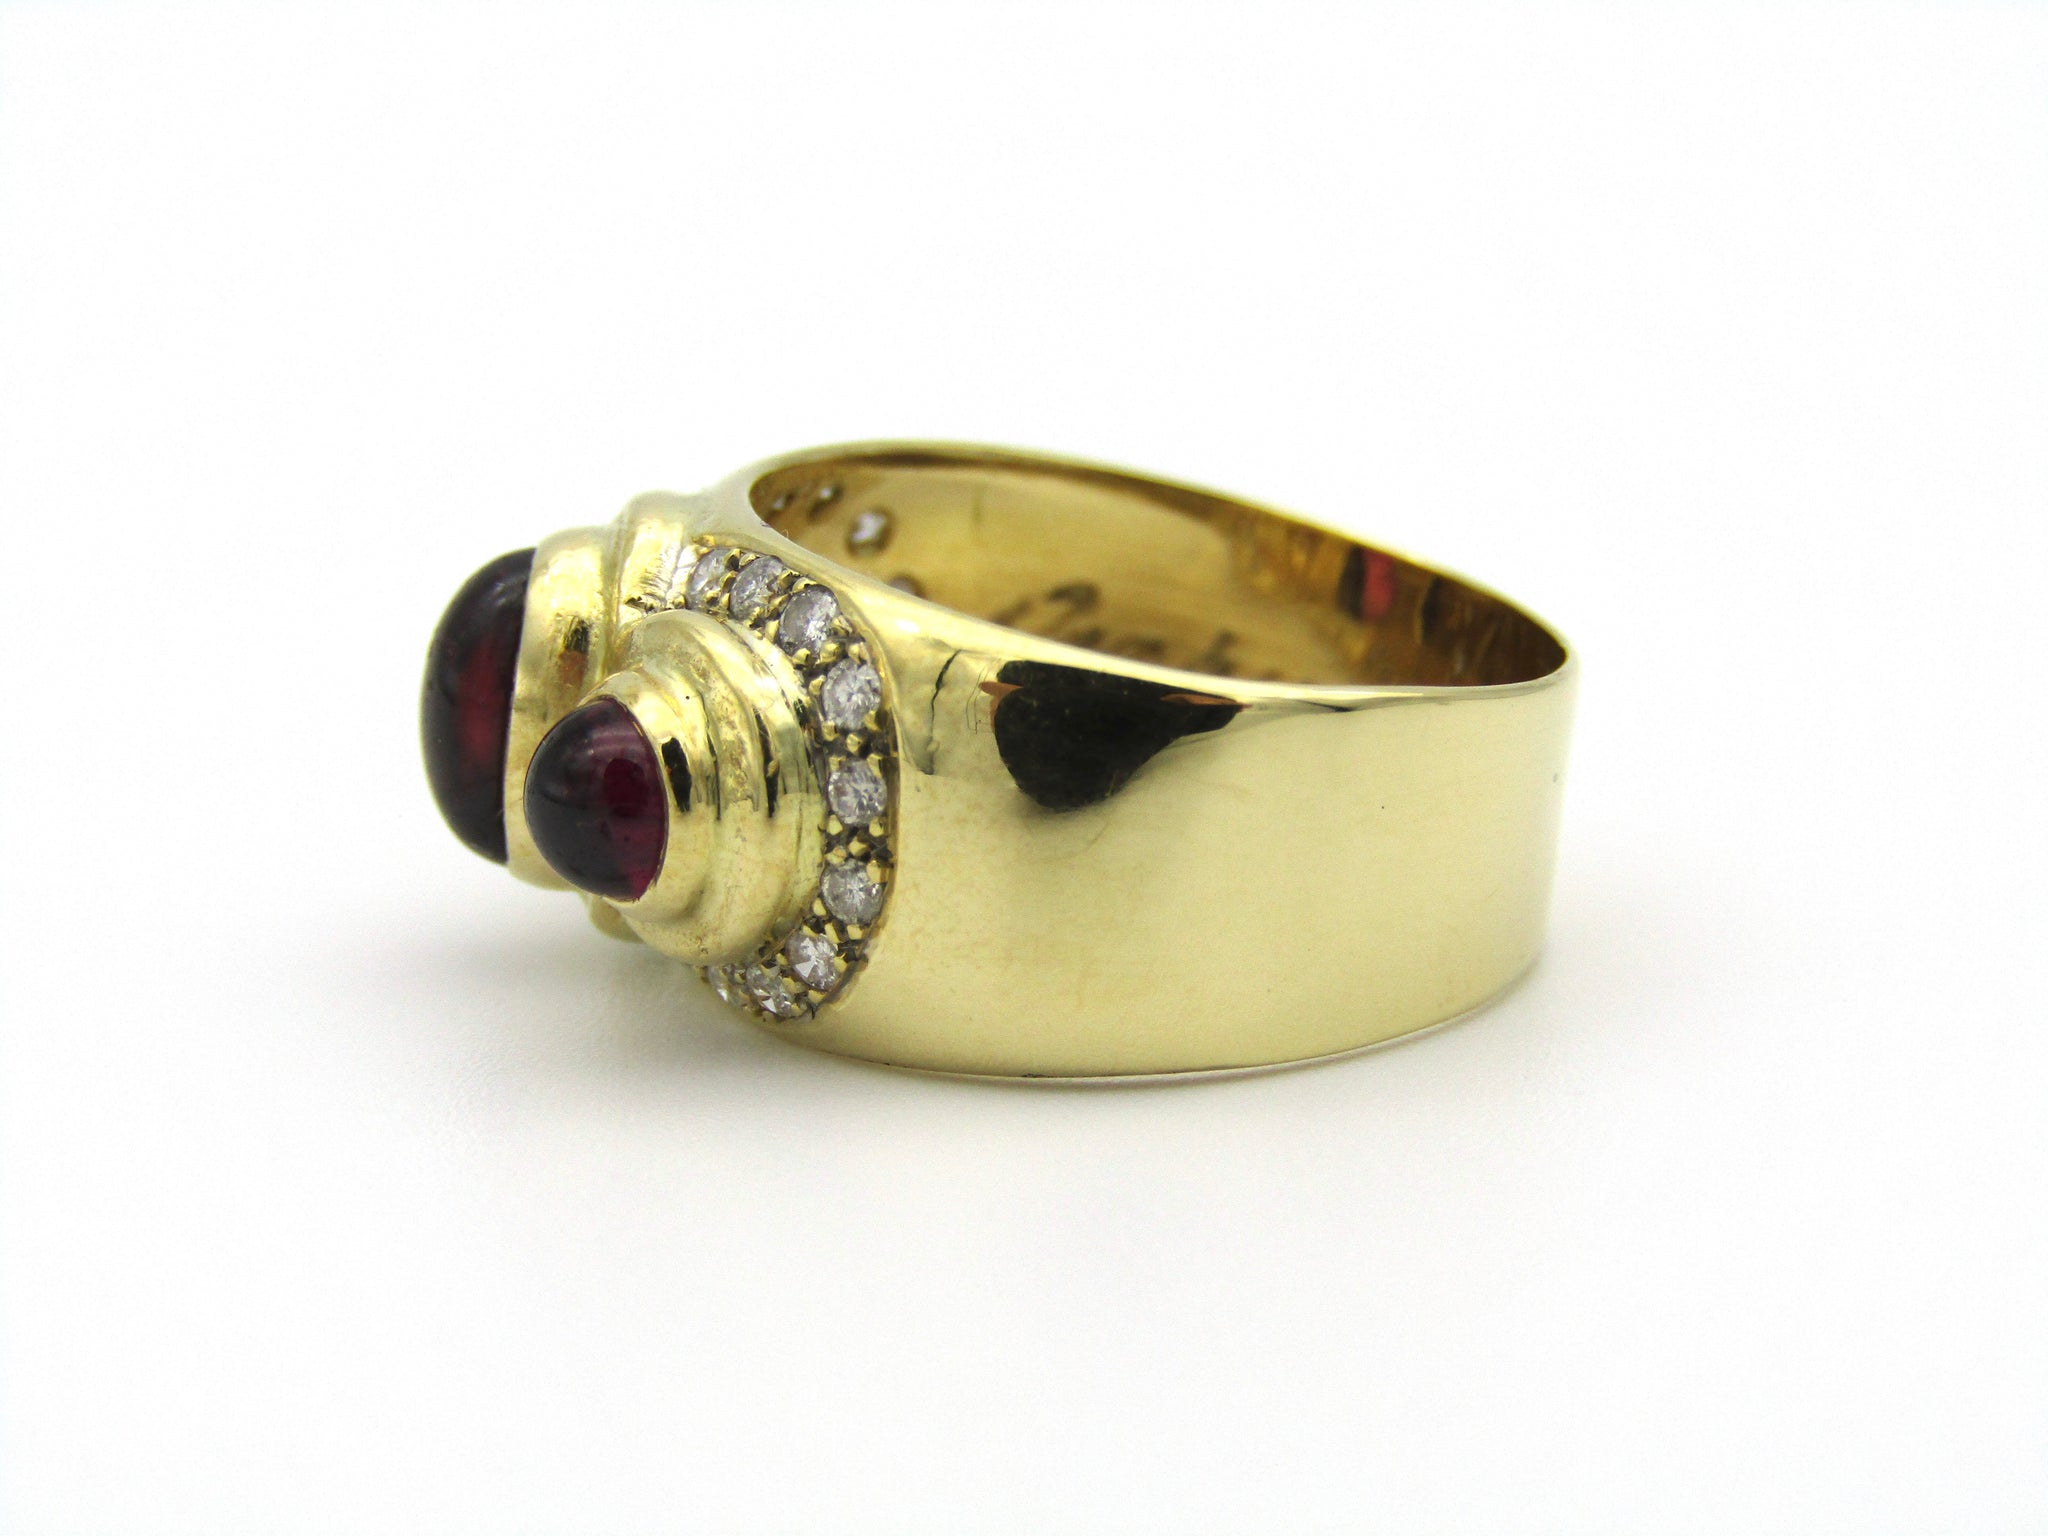 18kt yellow gold Rhodolite garnet and diamond ring by Orpheo.